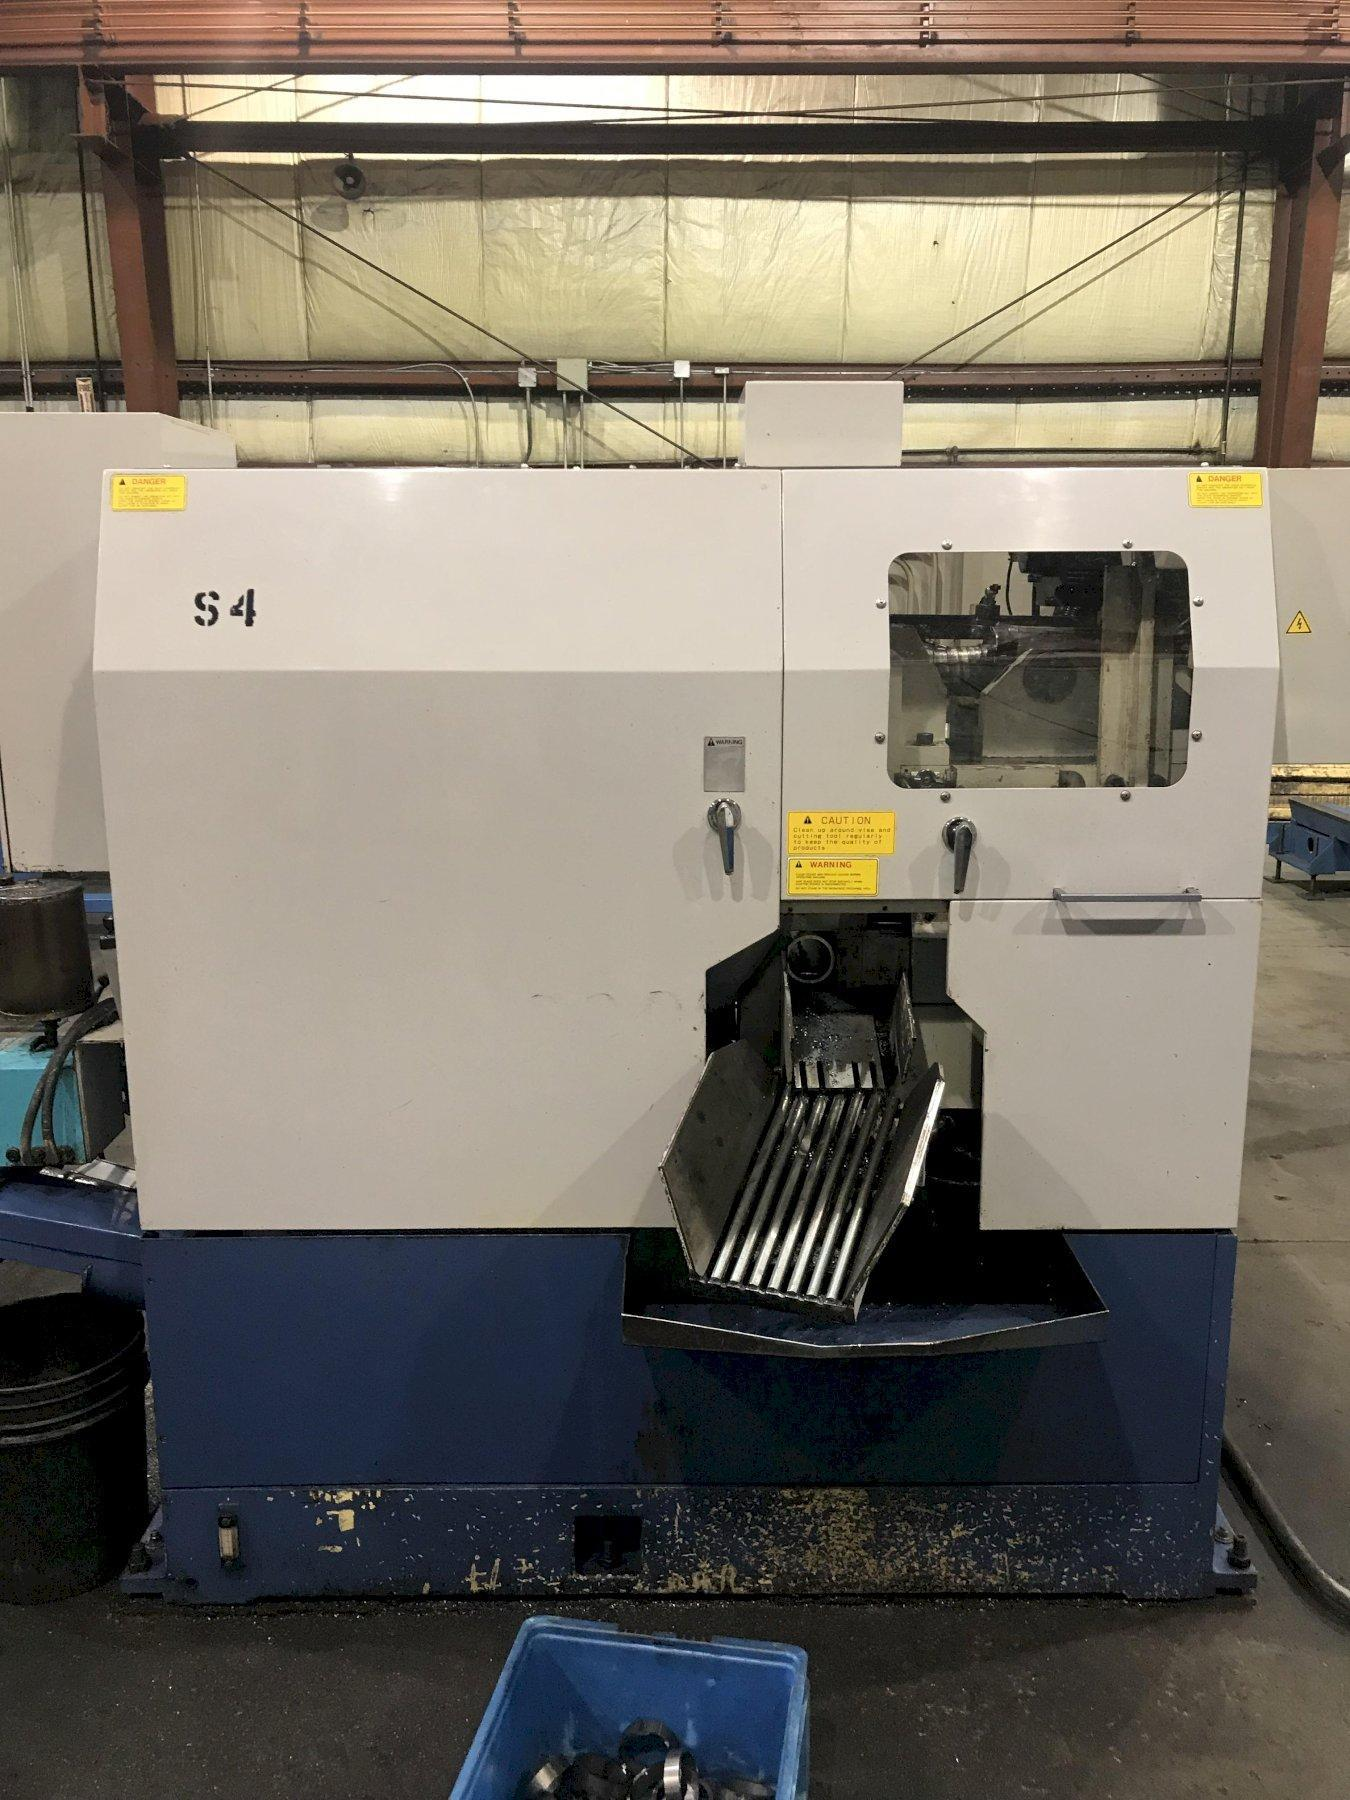 USED TSUNE MODEL TK5C-101GL CNC FULLY AUTOMATIC CNC CIRCULAR CARBIDE SAW, Stock no. 10688, Year 2004